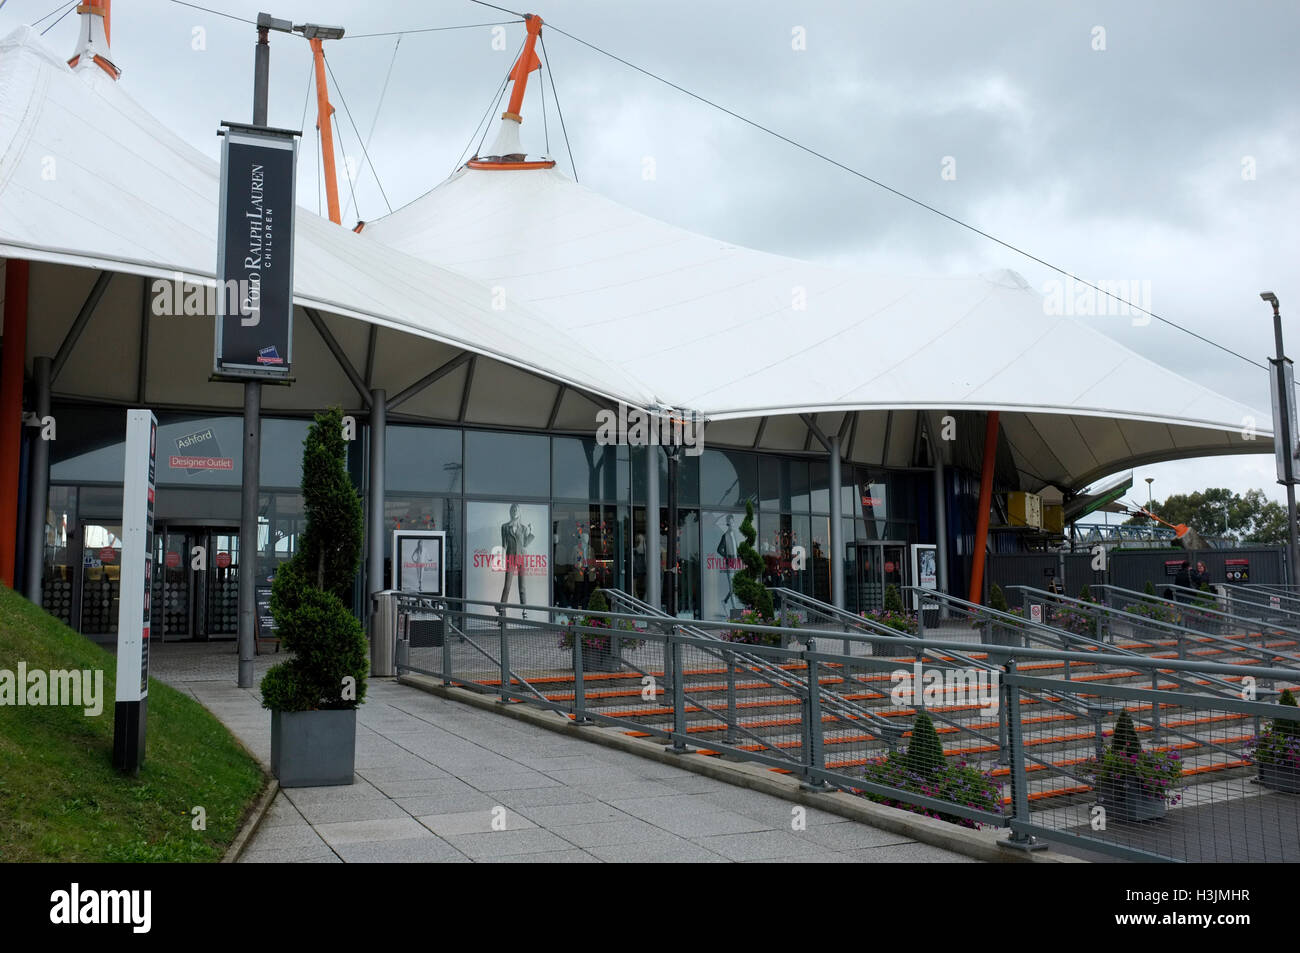 Ashford Designer Outlet Stock Photos & Ashford Designer Outlet Stock Images - Alamy